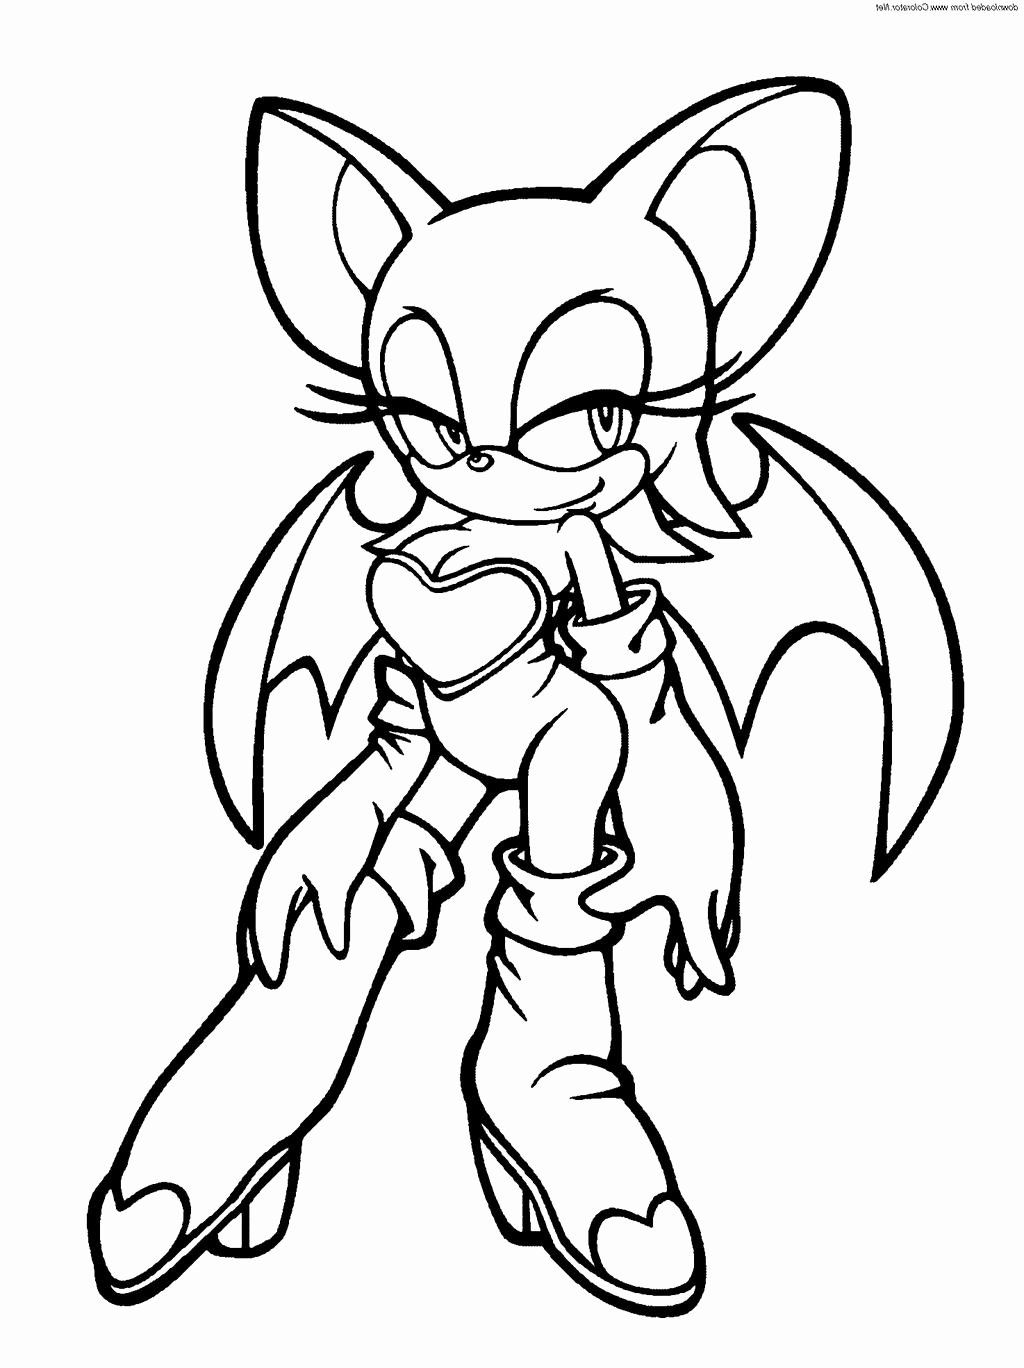 Sonic Printable Coloring Pages New Sonic X Coloring Pages Ator Oloring Characters Free Coloring Pages Printable Coloring Pages Bible Coloring Pages